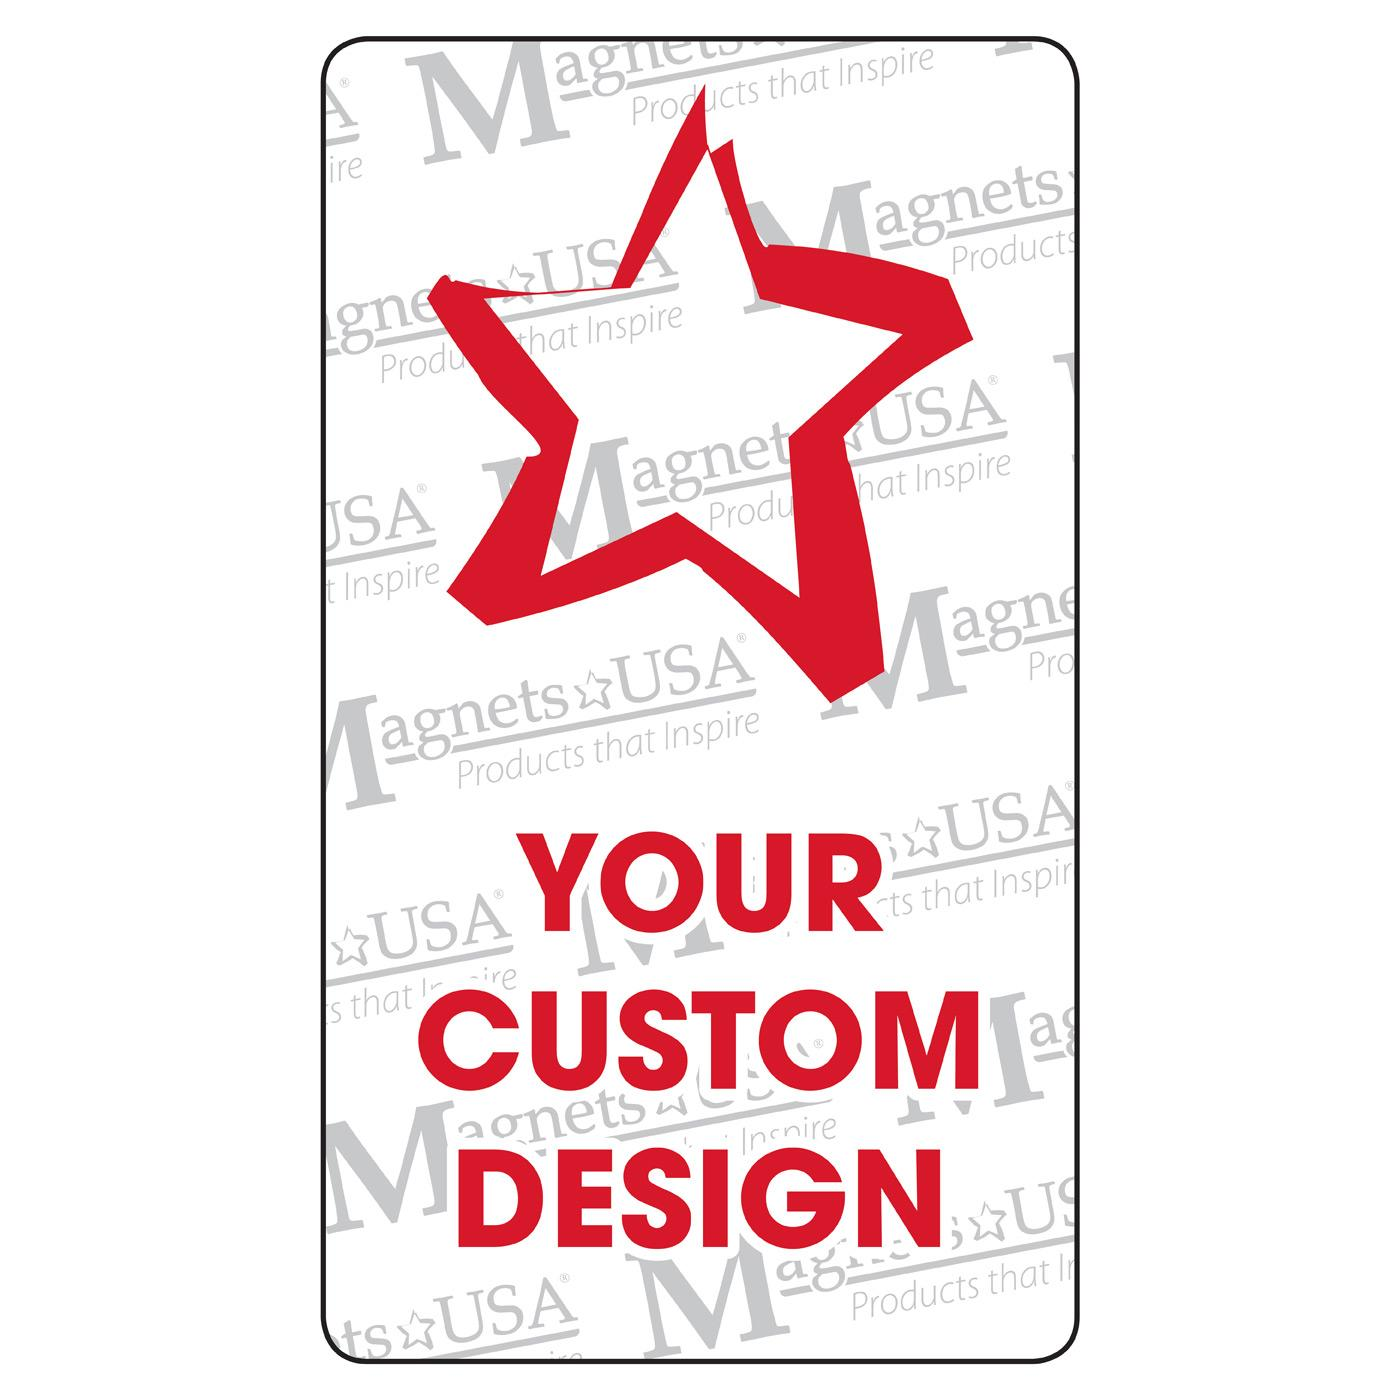 Plastic Business Cards | Magnets USA®